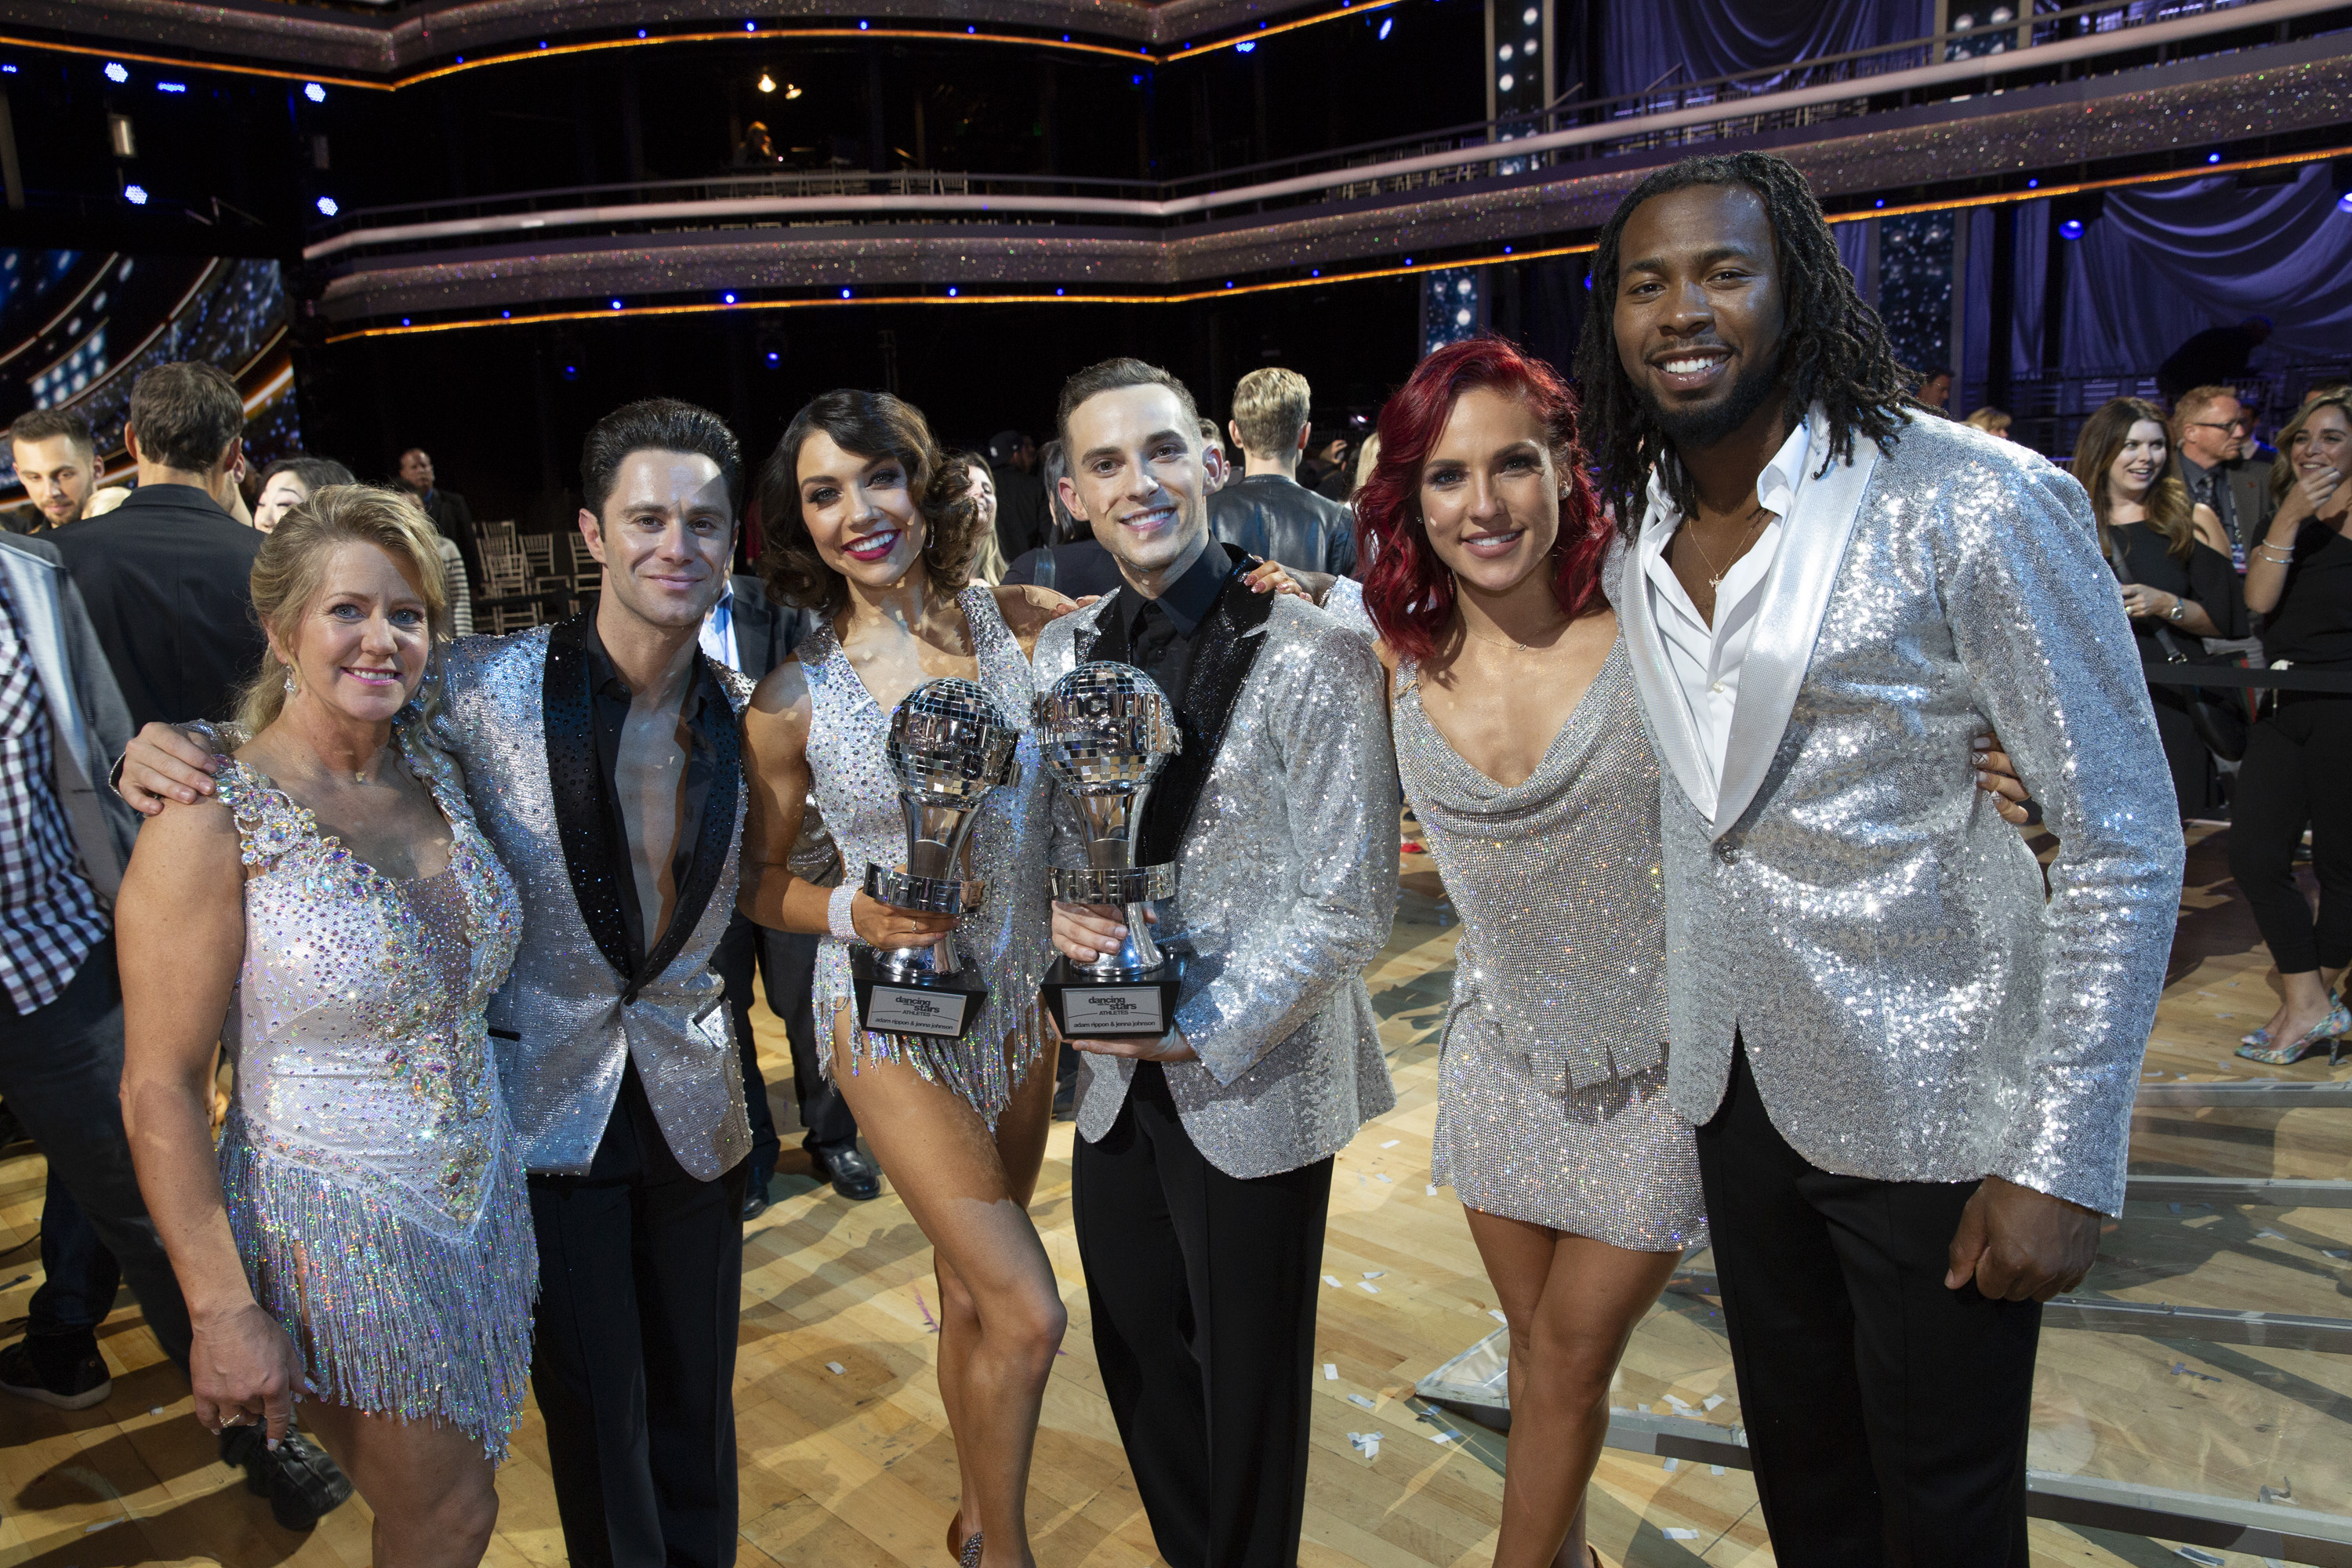 dwts 2018 season finale: who won the mirrorball trophy? | dancing